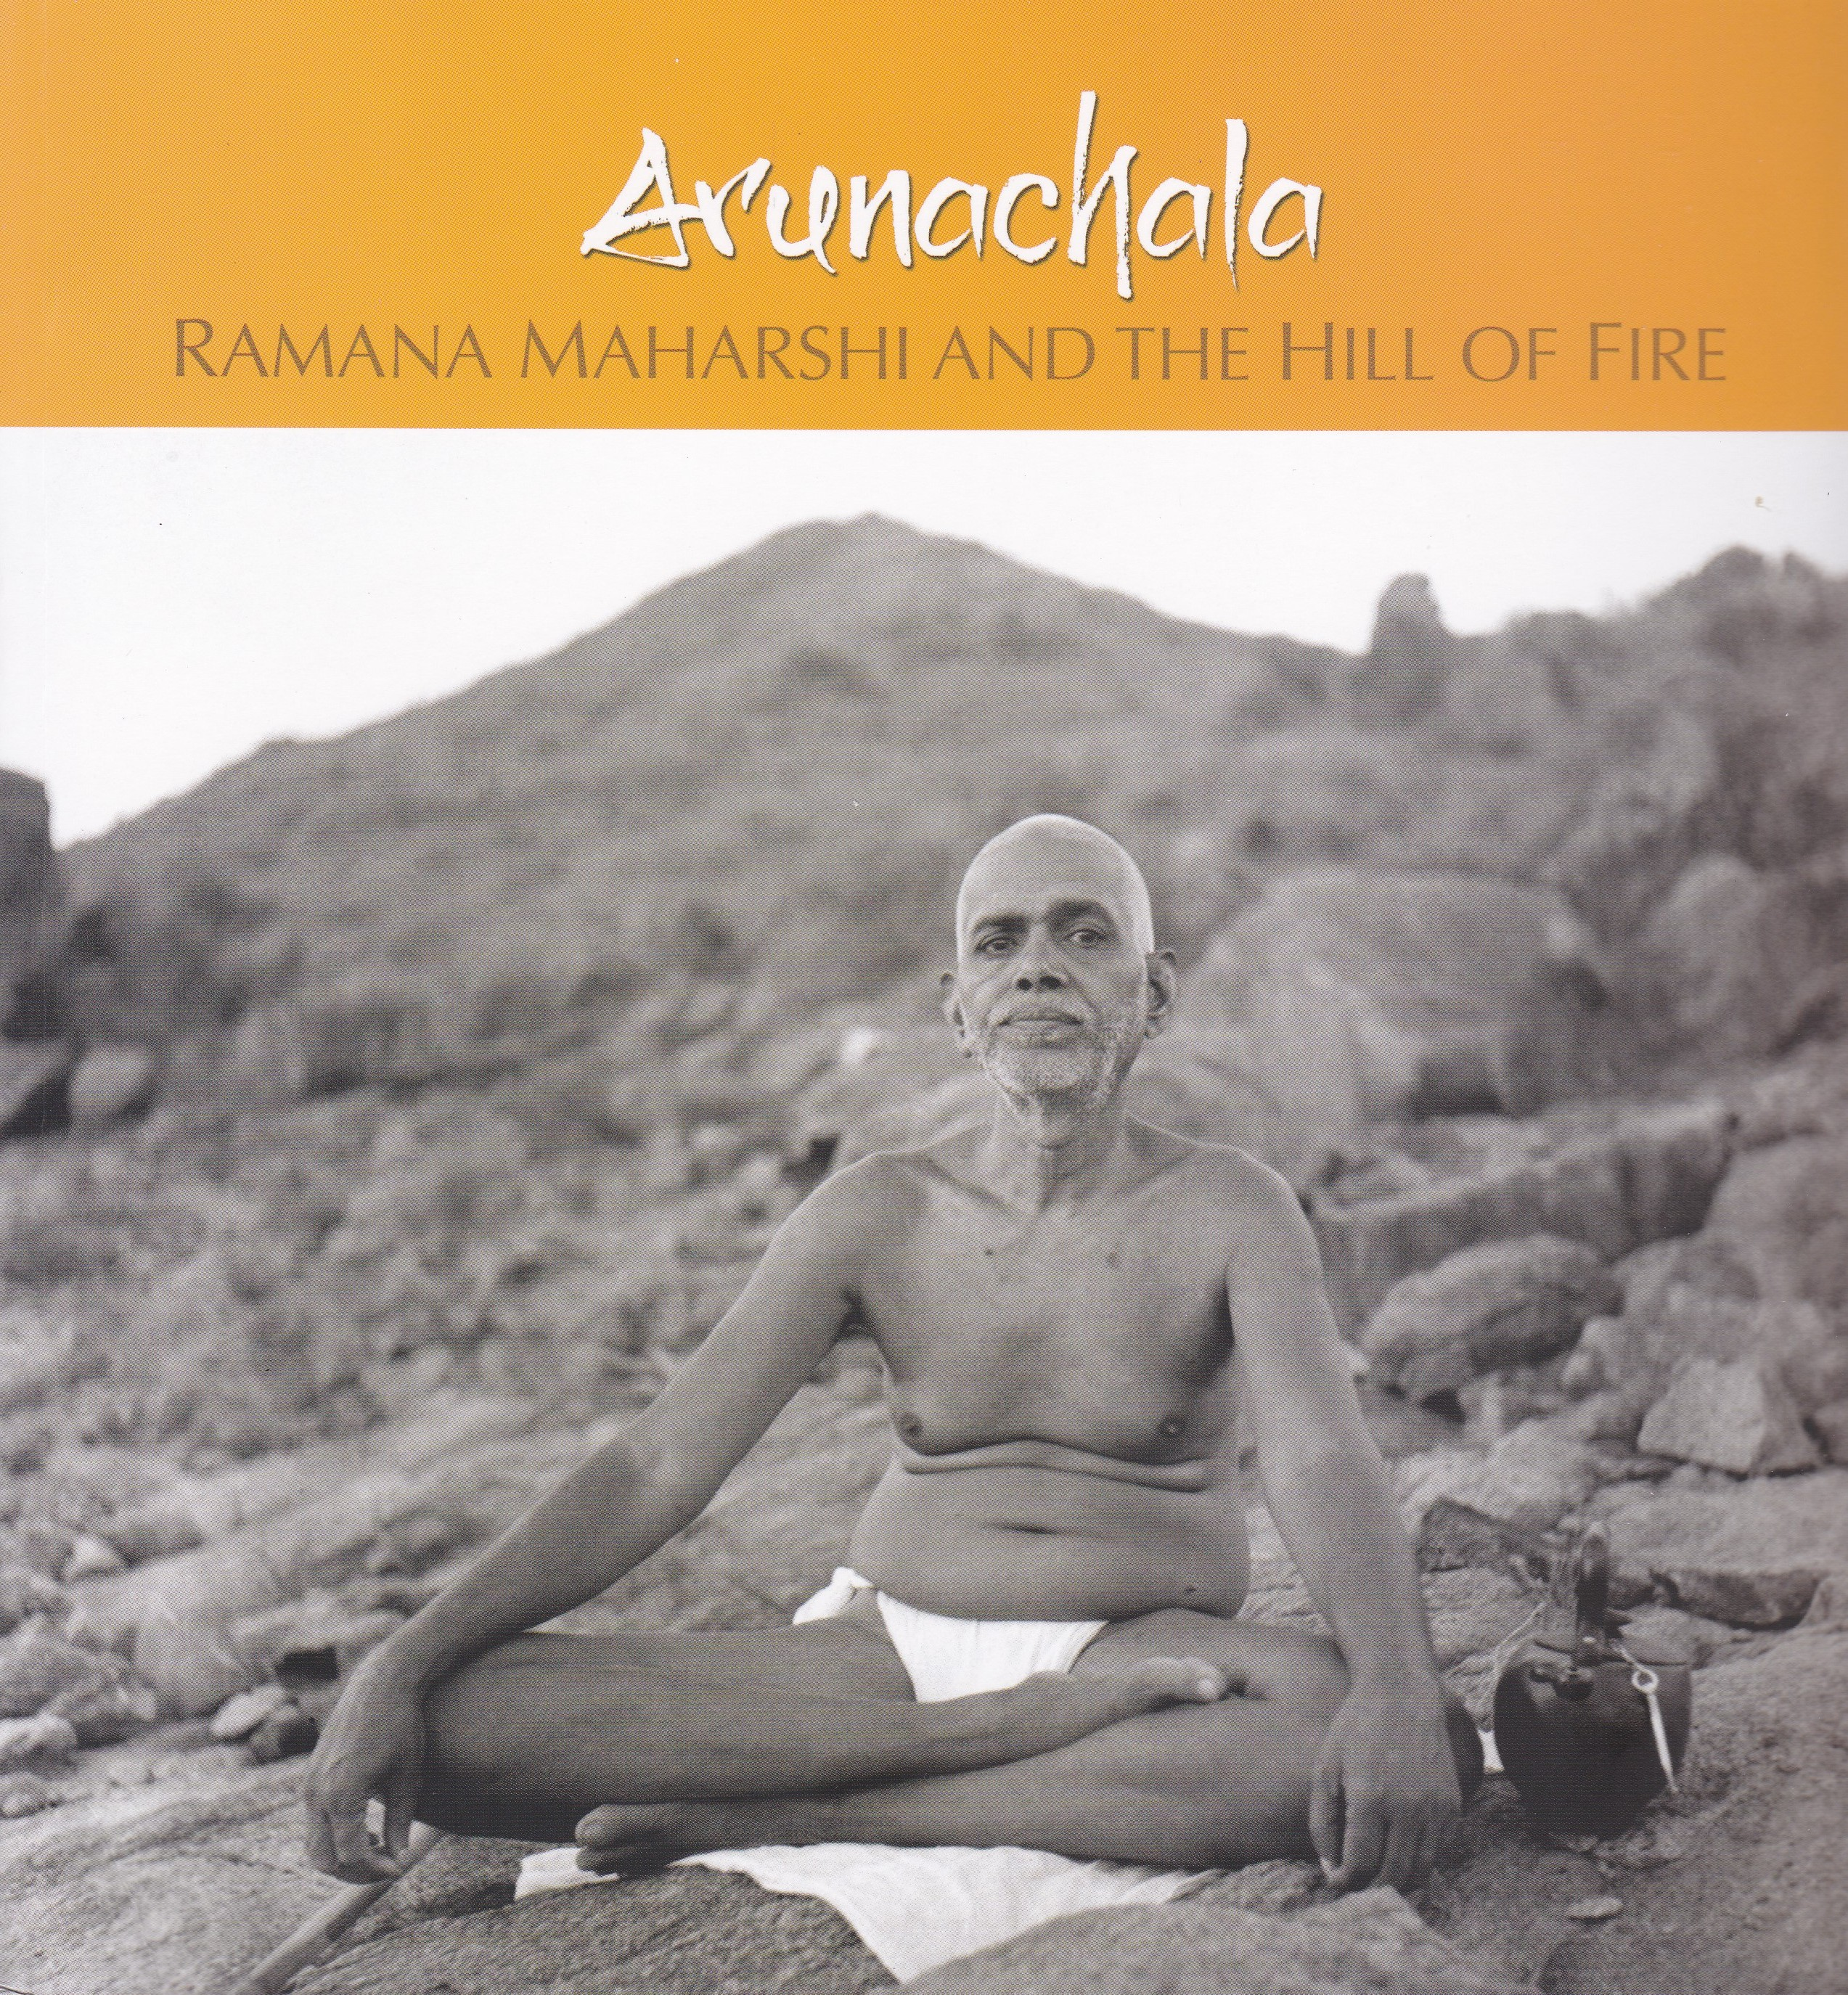 Arunachala: Ramana Maharshi and the Hill of Fire